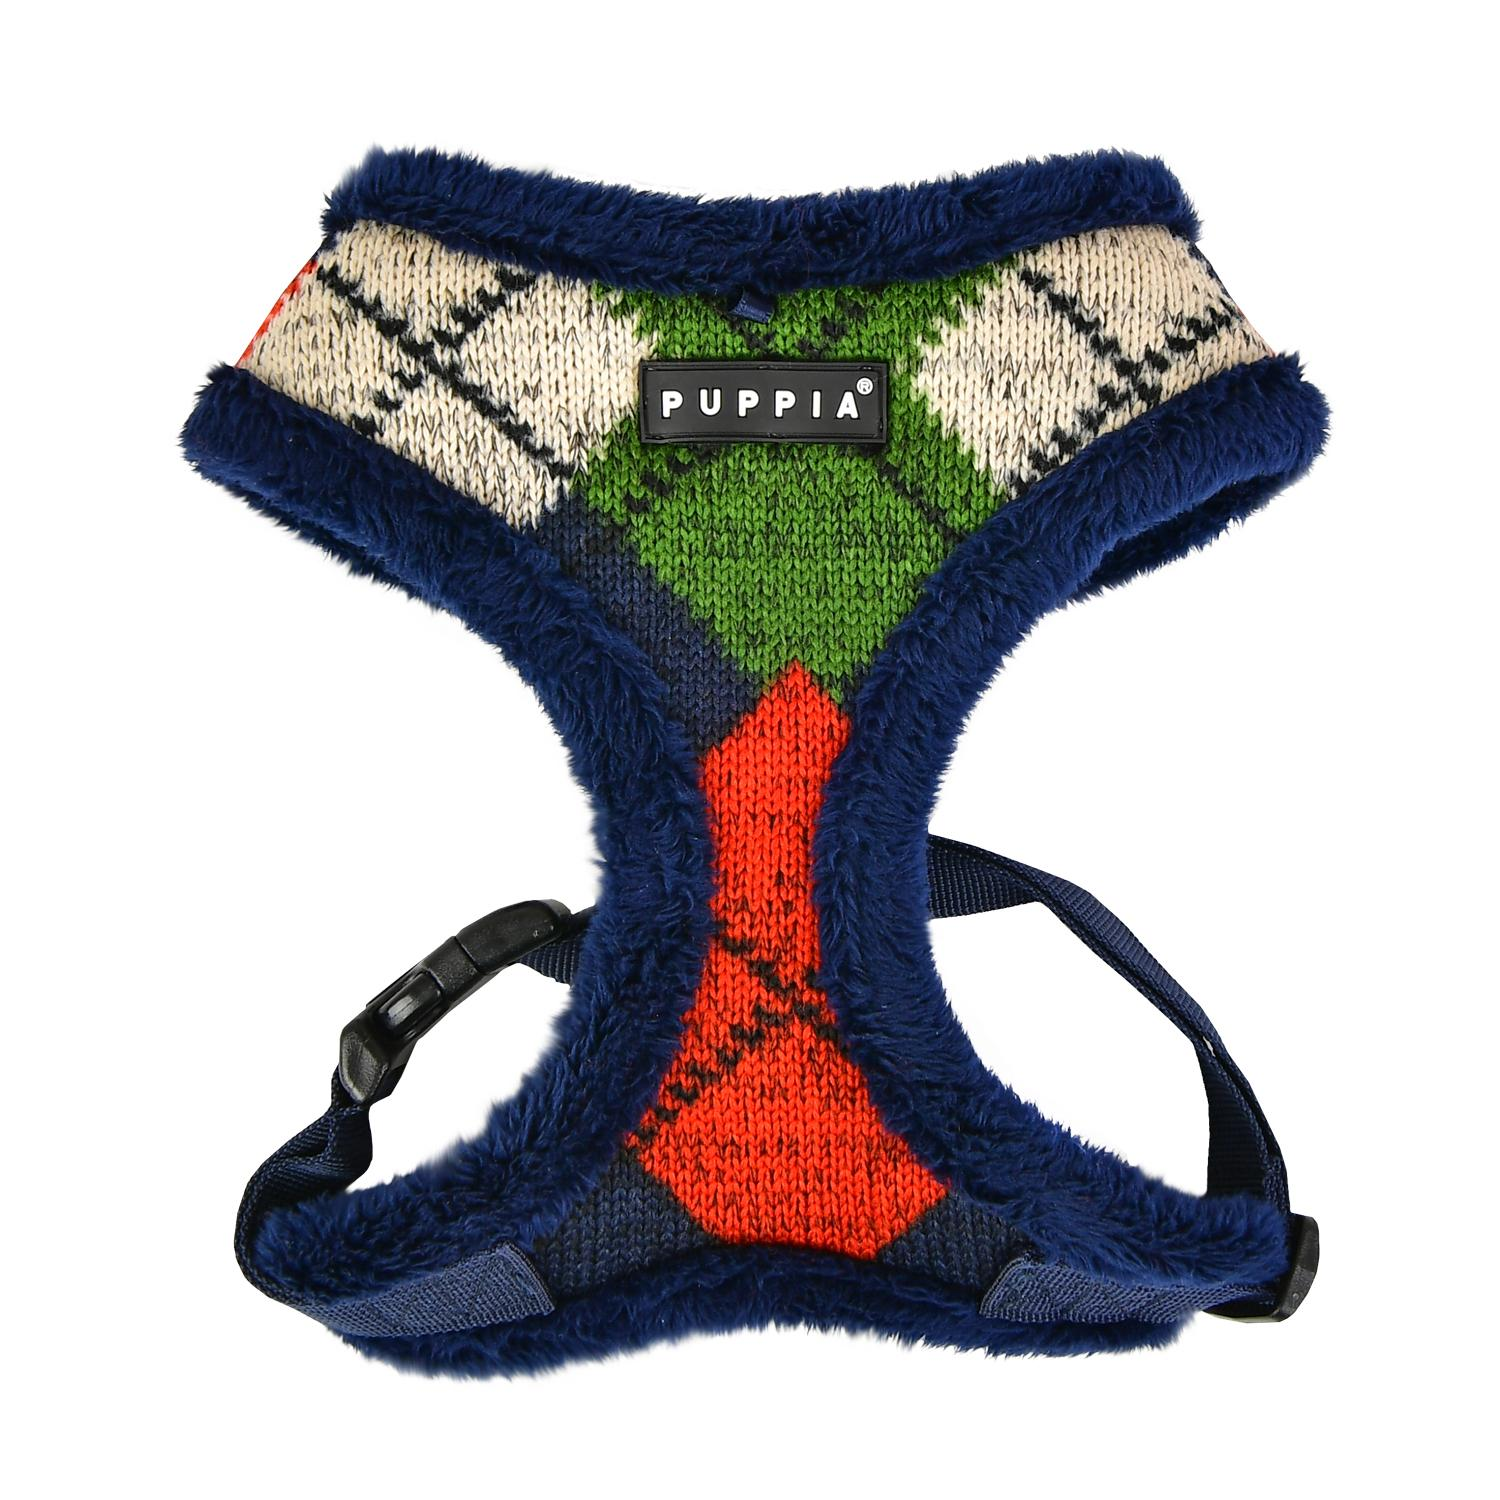 Jolly Dog Harness by Puppia - Navy